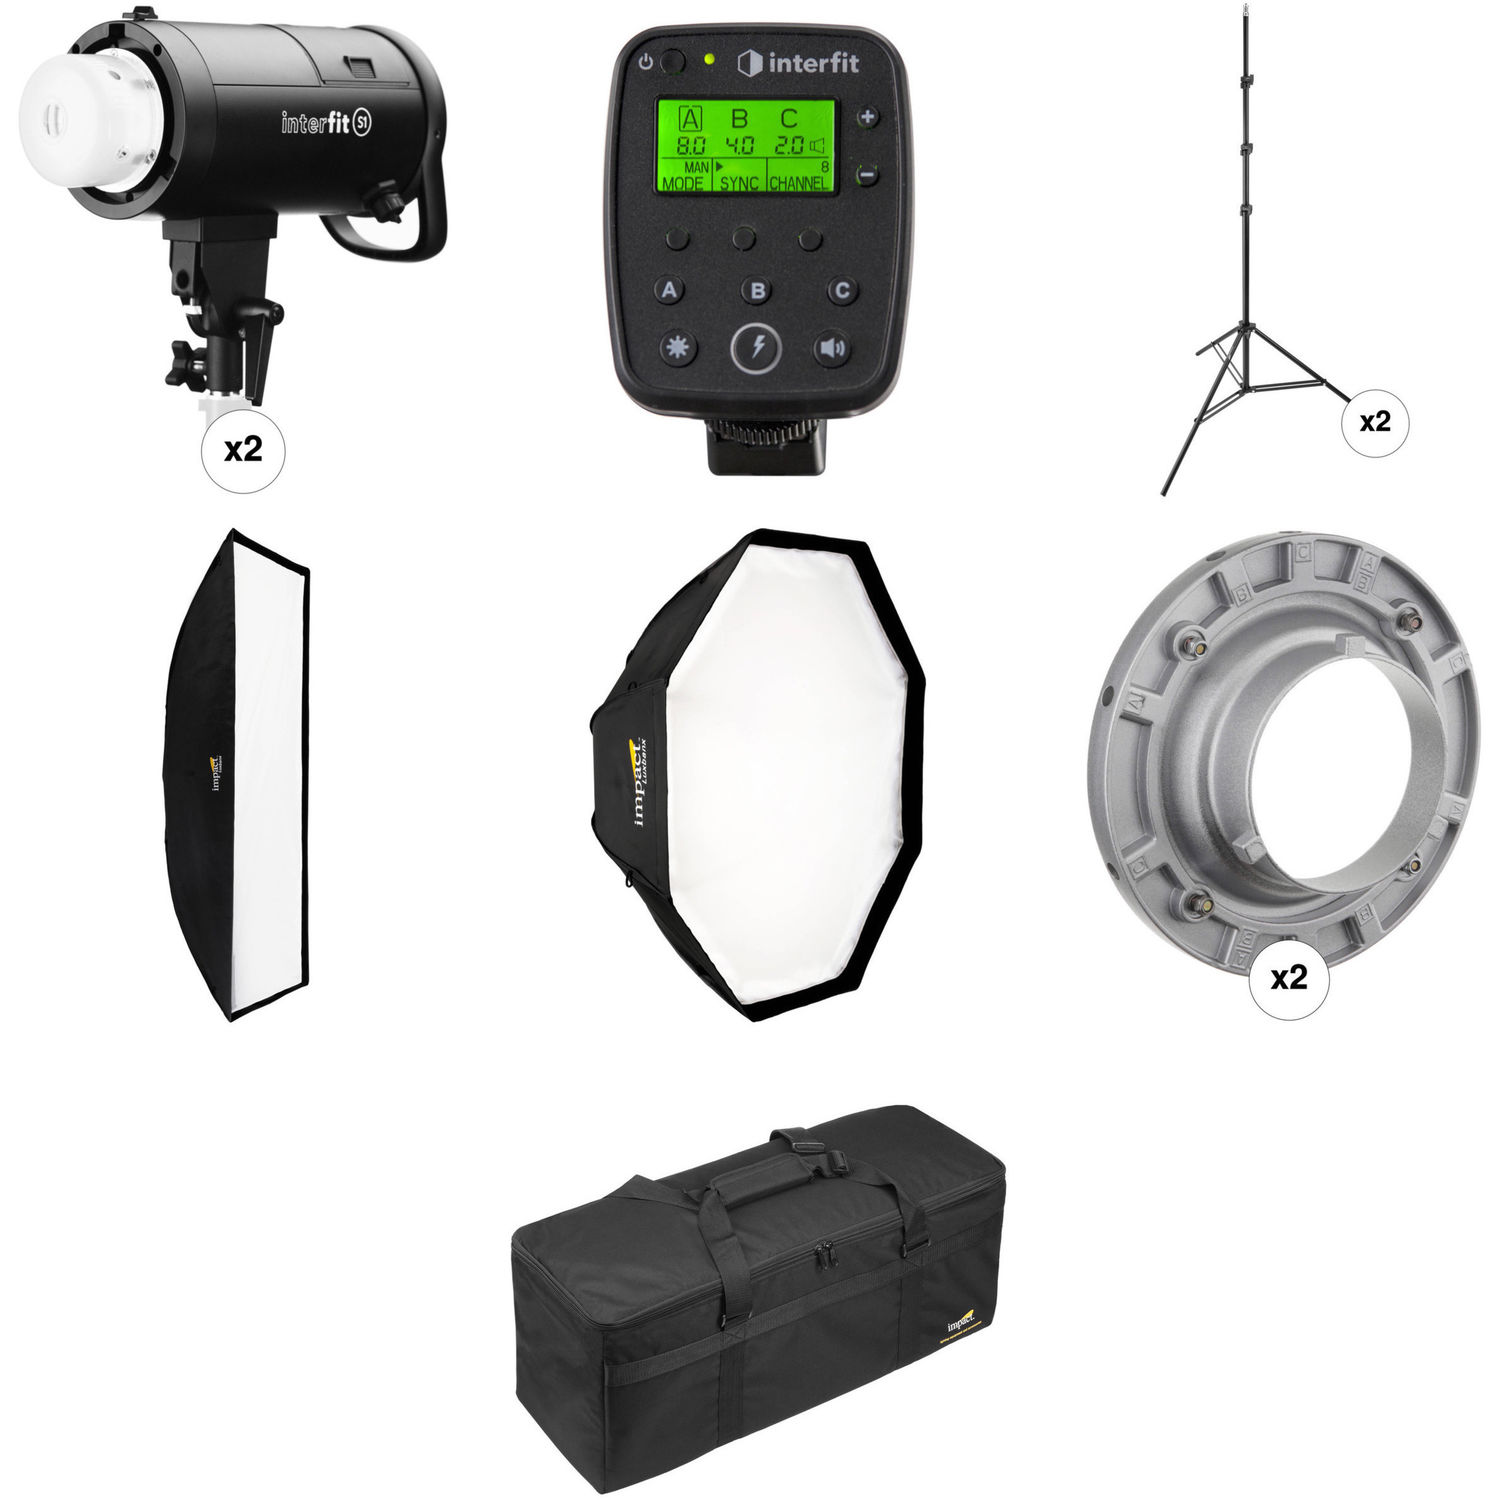 Interfit S1 AC/DC 2-Light TTL Pro Flash Kit for Canon  sc 1 st  Bu0026H : canon lighting system - azcodes.com